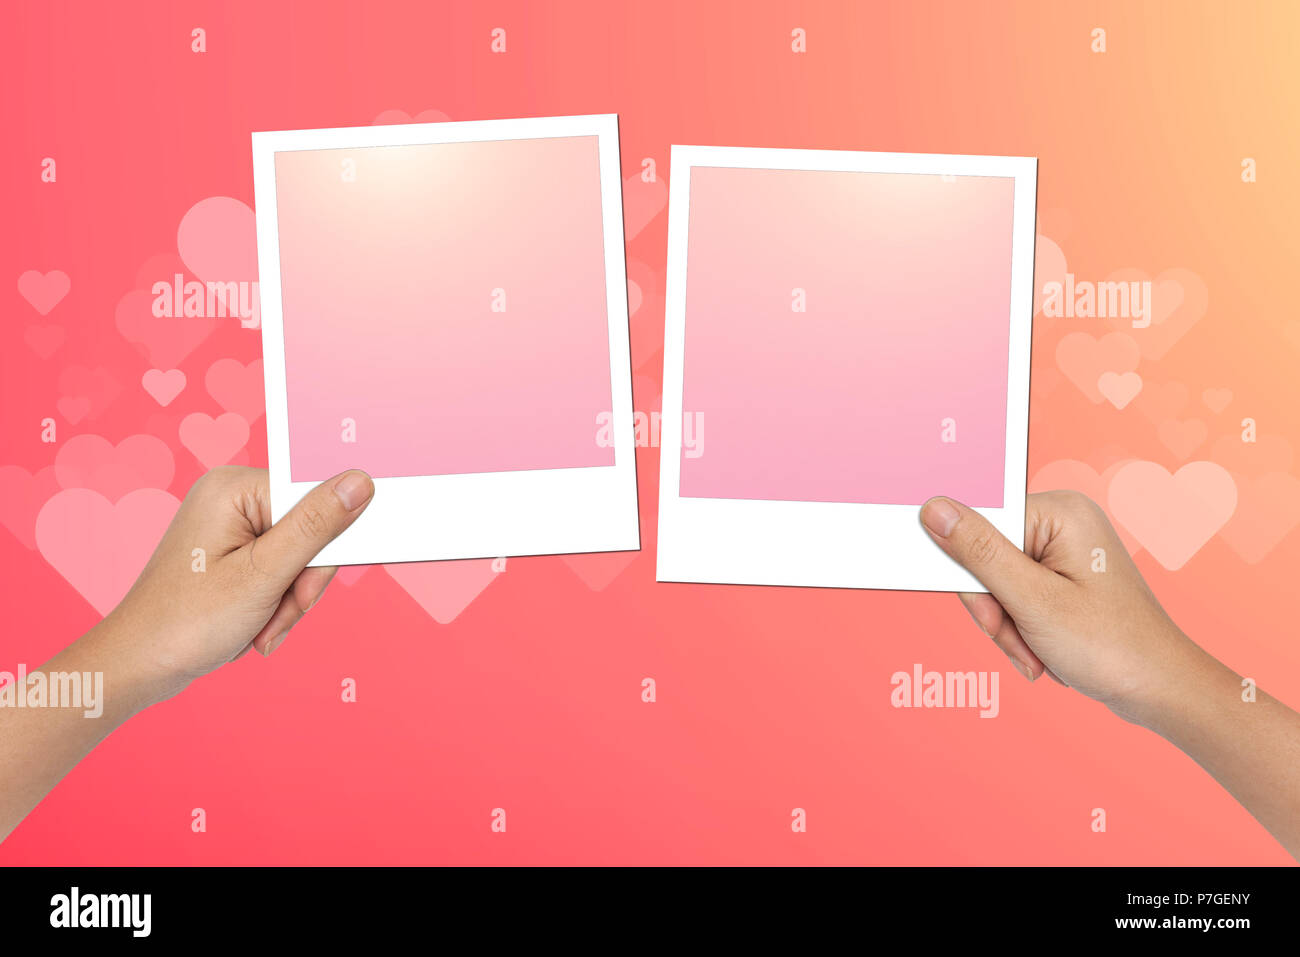 Hands Hold Blank Photo Frame On Pink Valentines Day Background